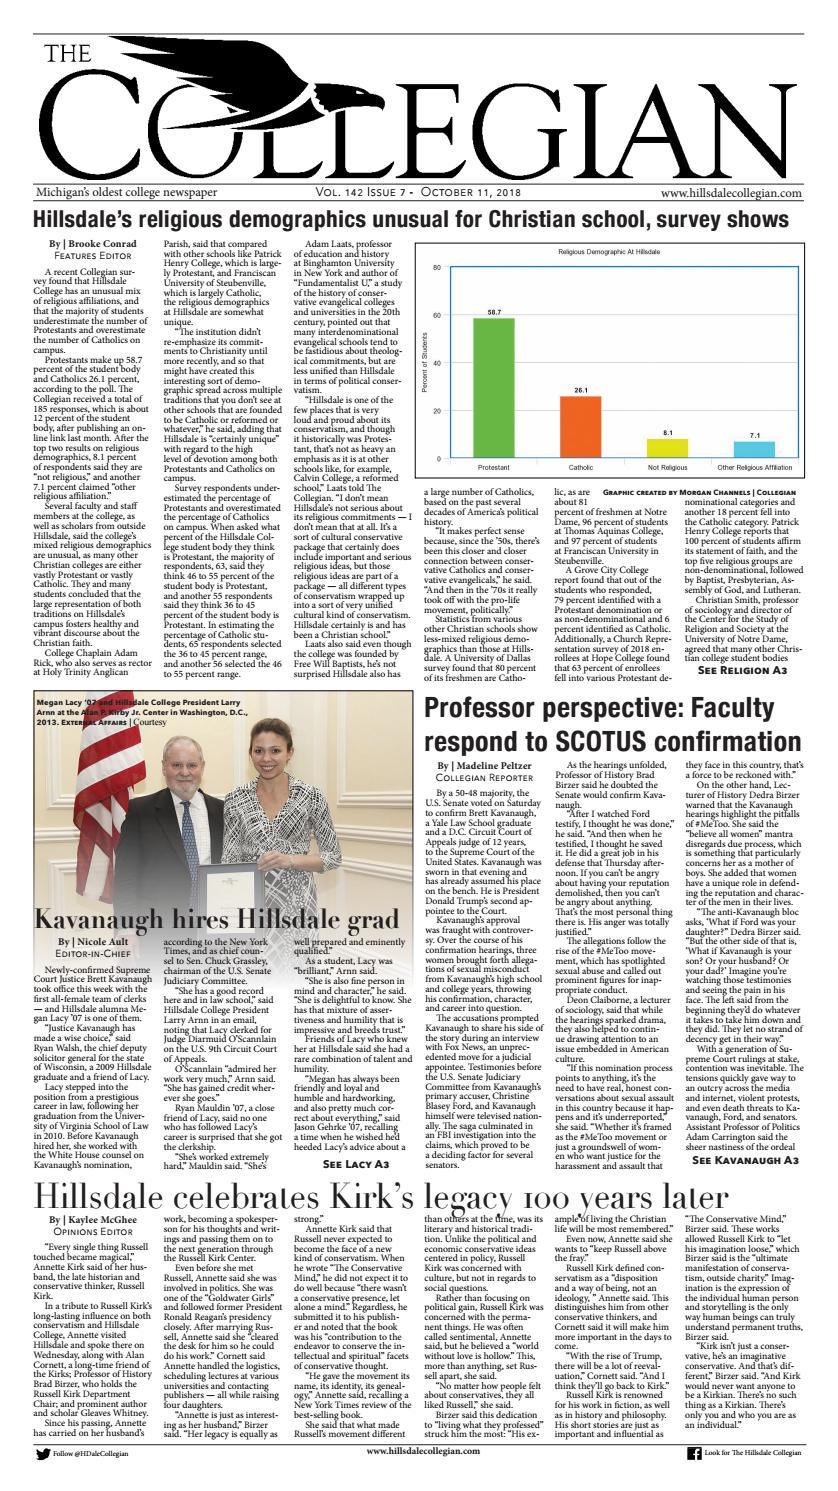 Hilldale Wind O Meter Registers >> Hillsdale Collegian 10 11 18 By The Hillsdale Collegian Issuu